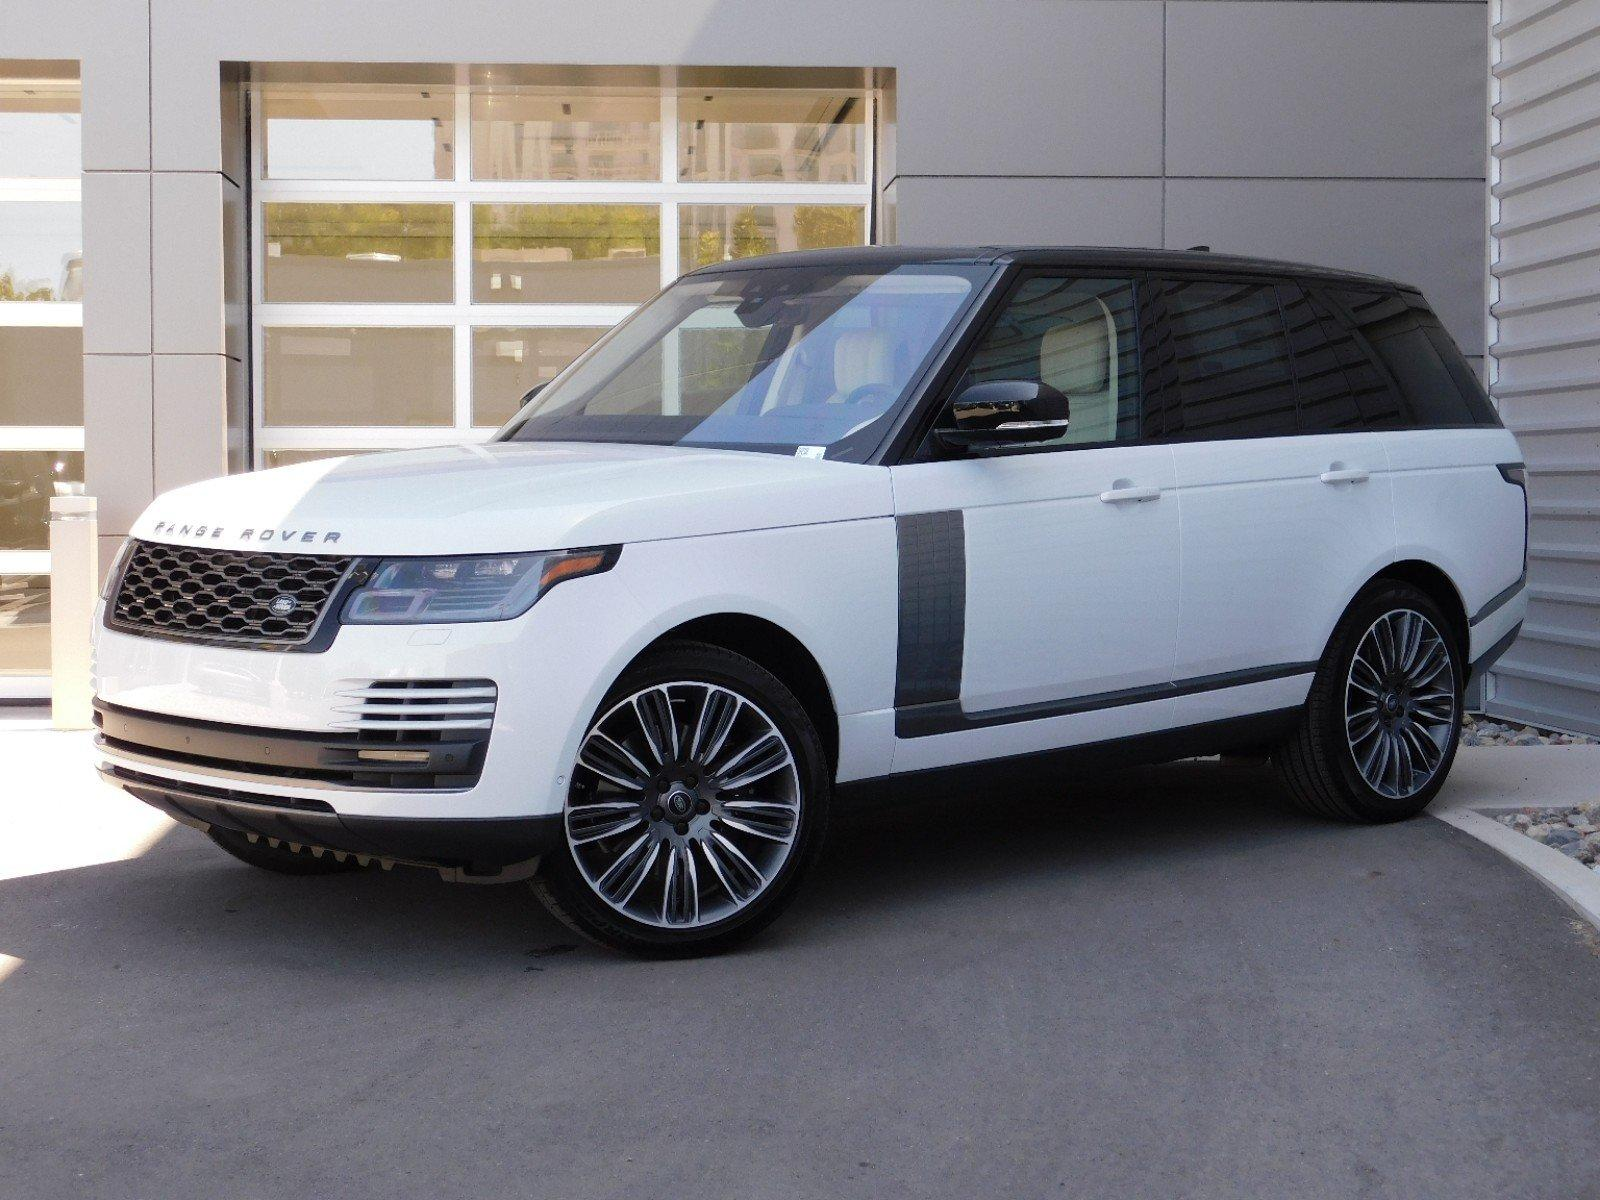 The 2020 Range Rover now offers higher levels of performance, refinement and responsiveness with the latest 3.0-liter inline six-cylinder Ingenium gasoline engine.